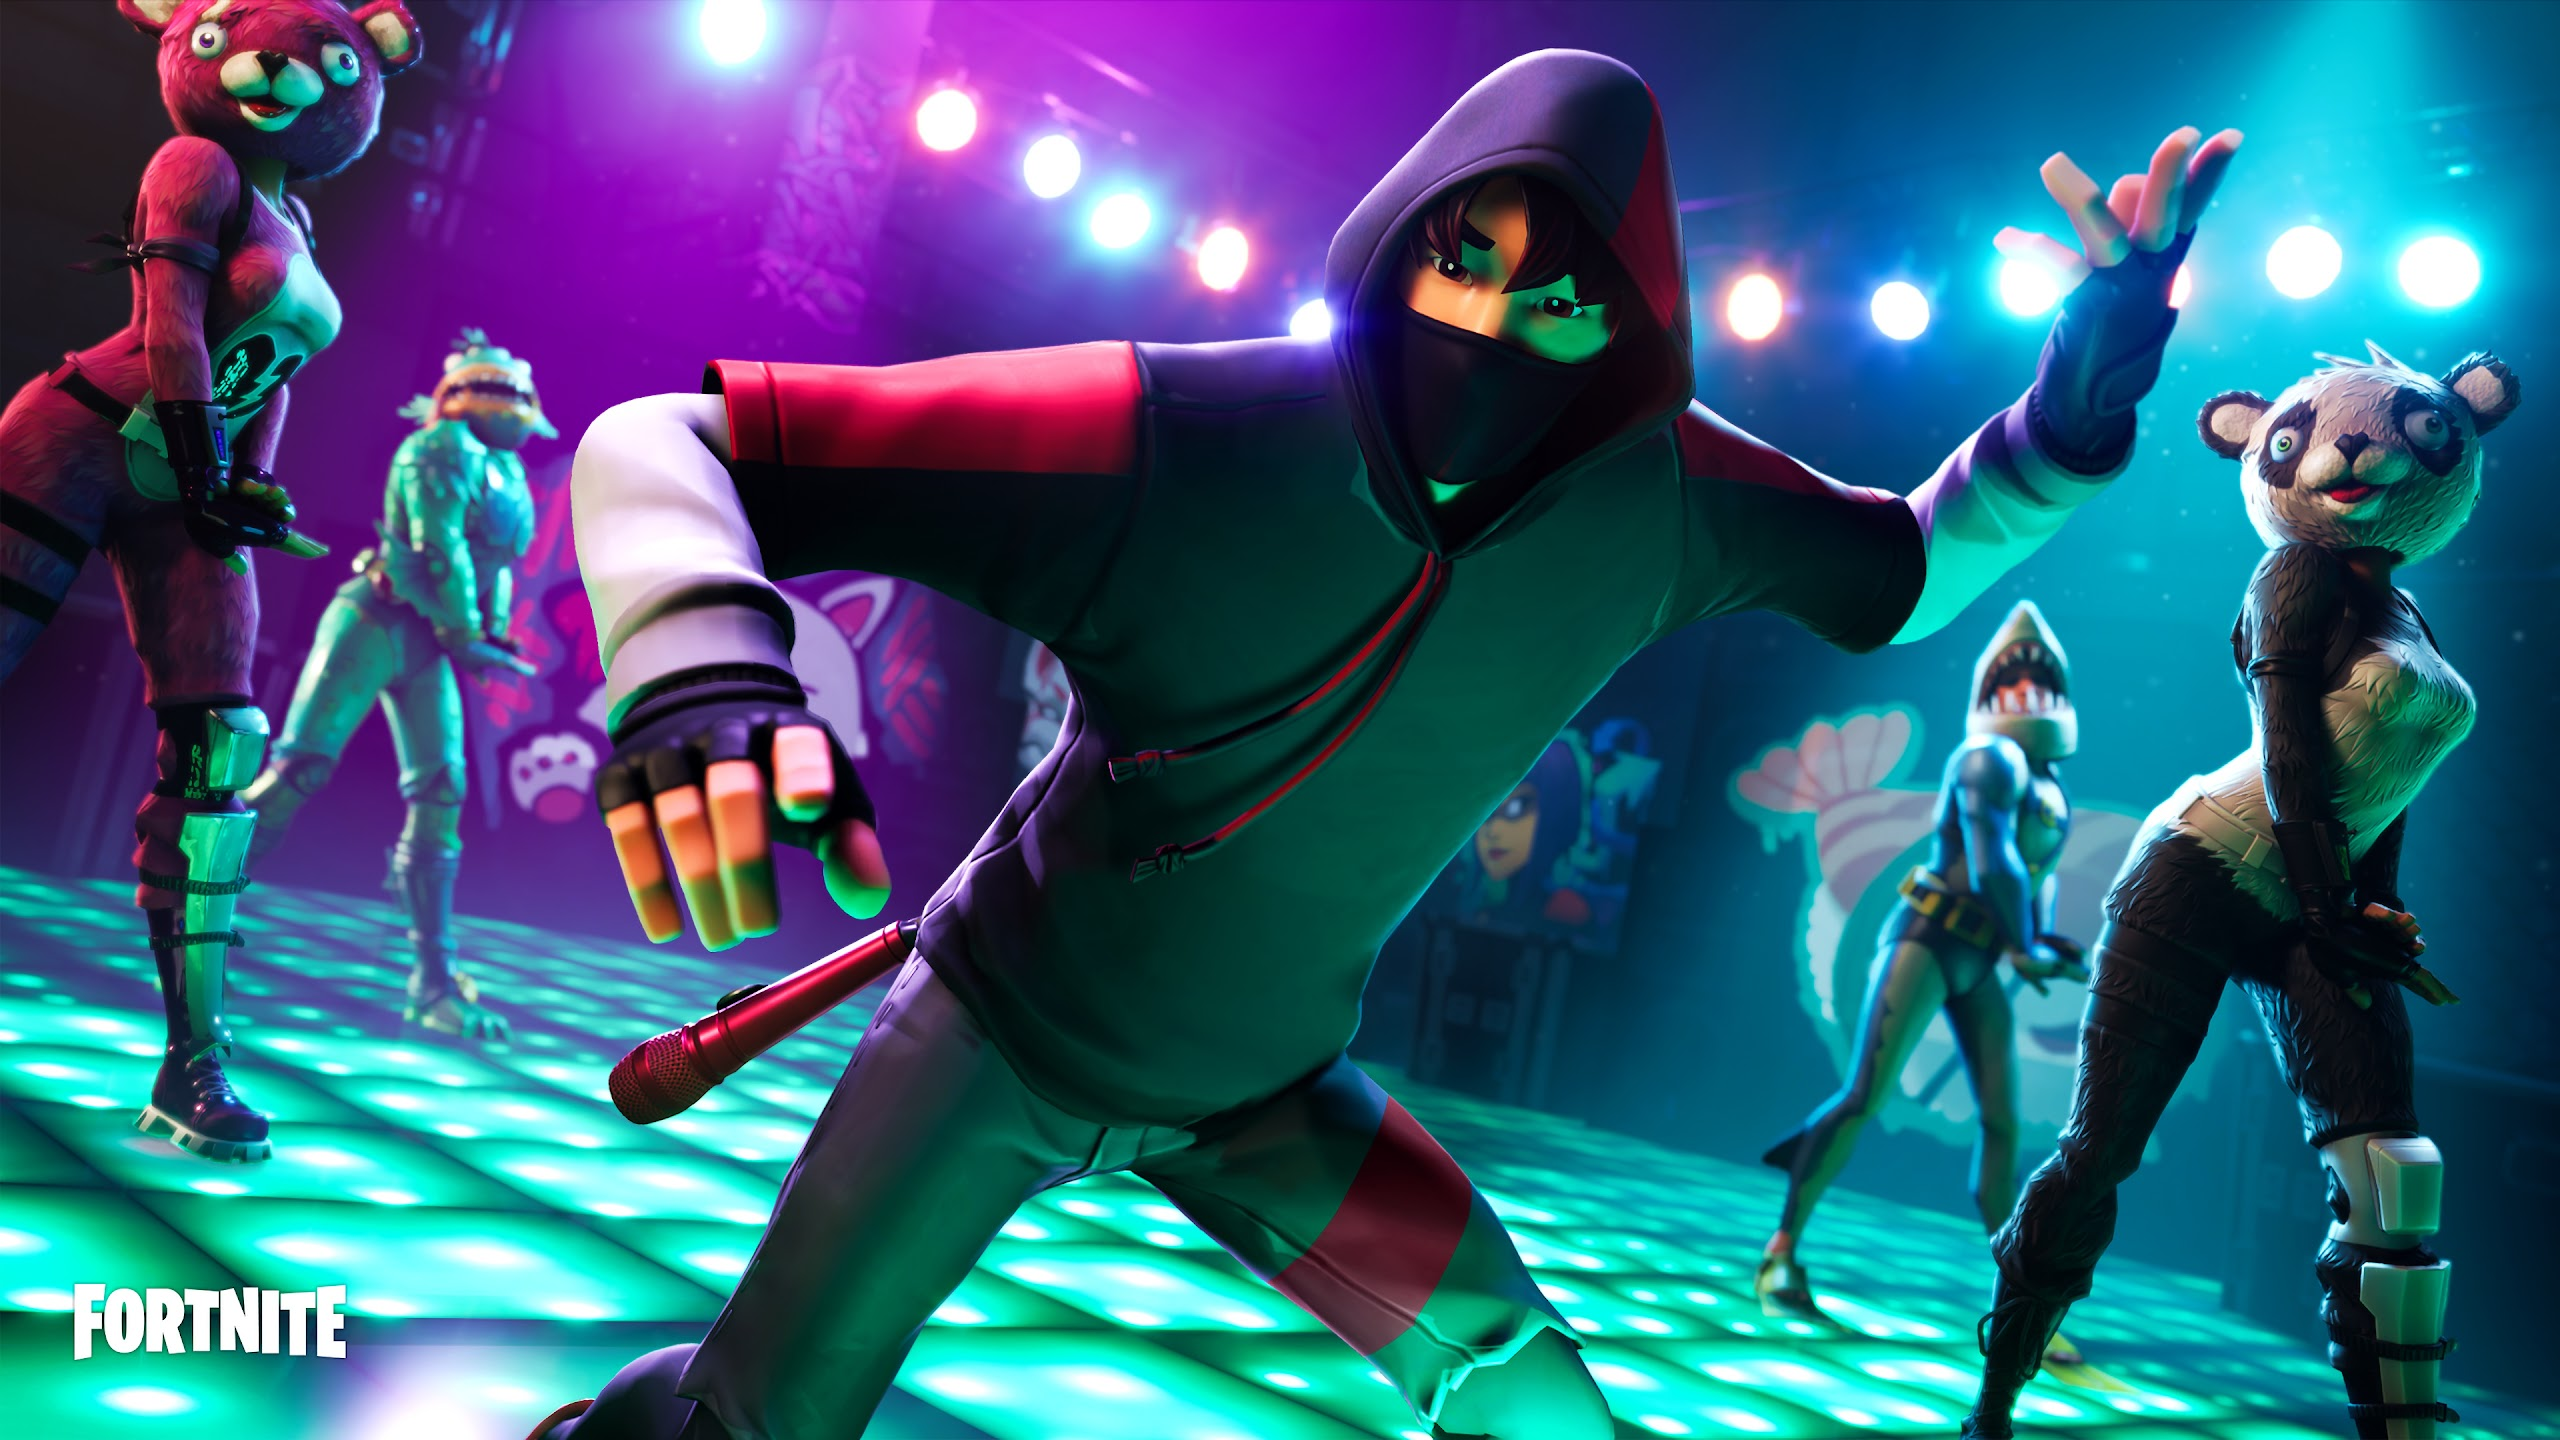 Fortnite Battle Royale Ikonik Samsung S10 4k Wallpaper 108